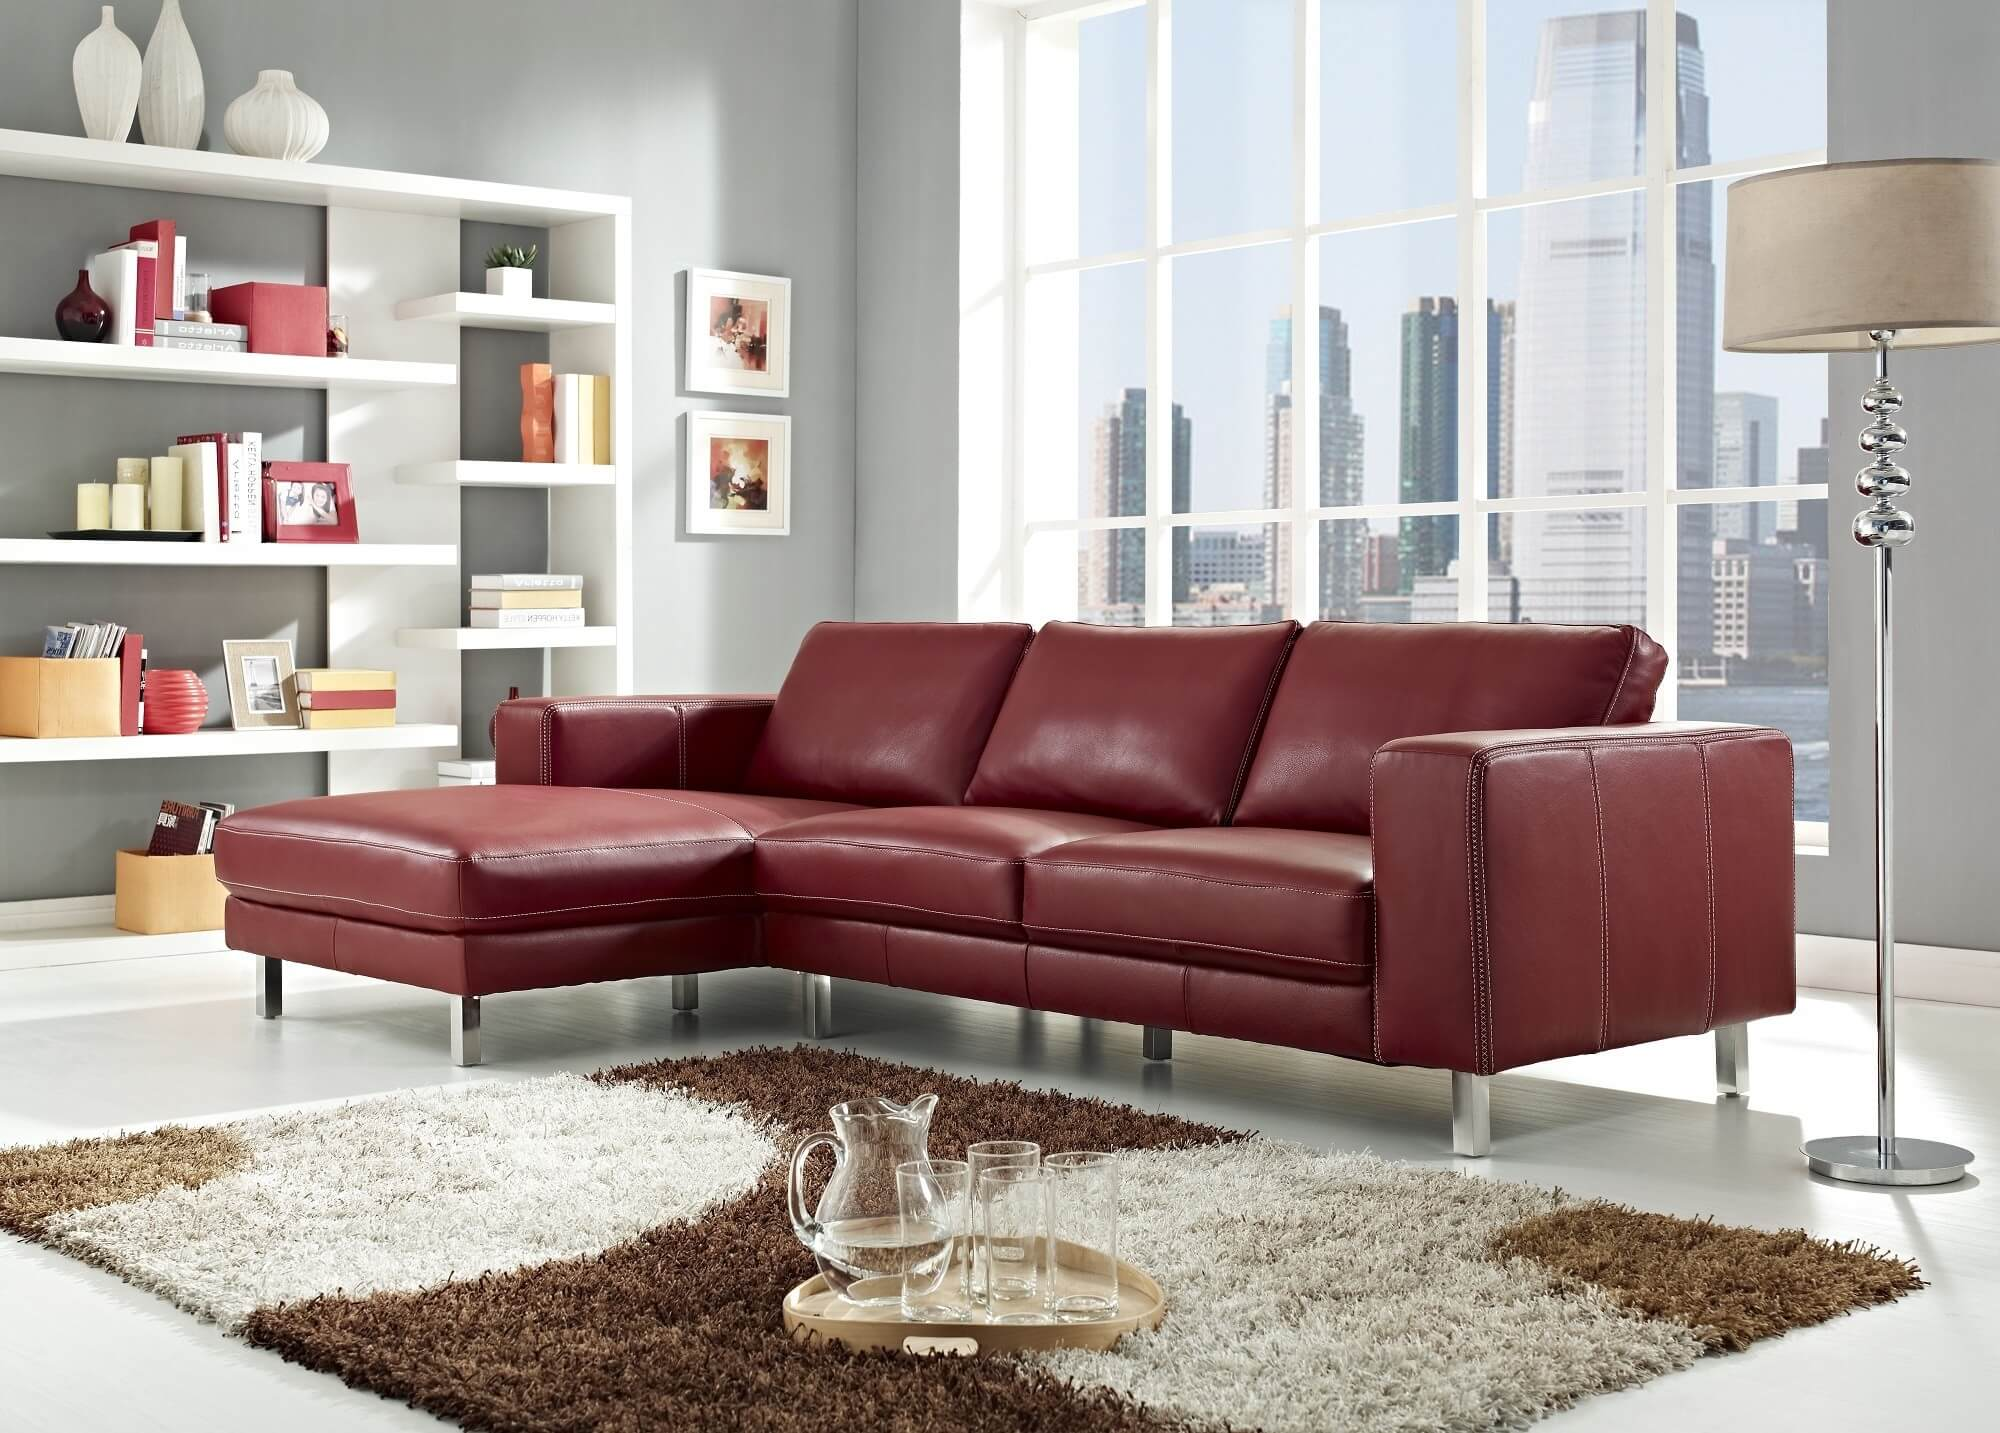 red couch living room photos designs indian apartments 18 stylish modern sectional sofas